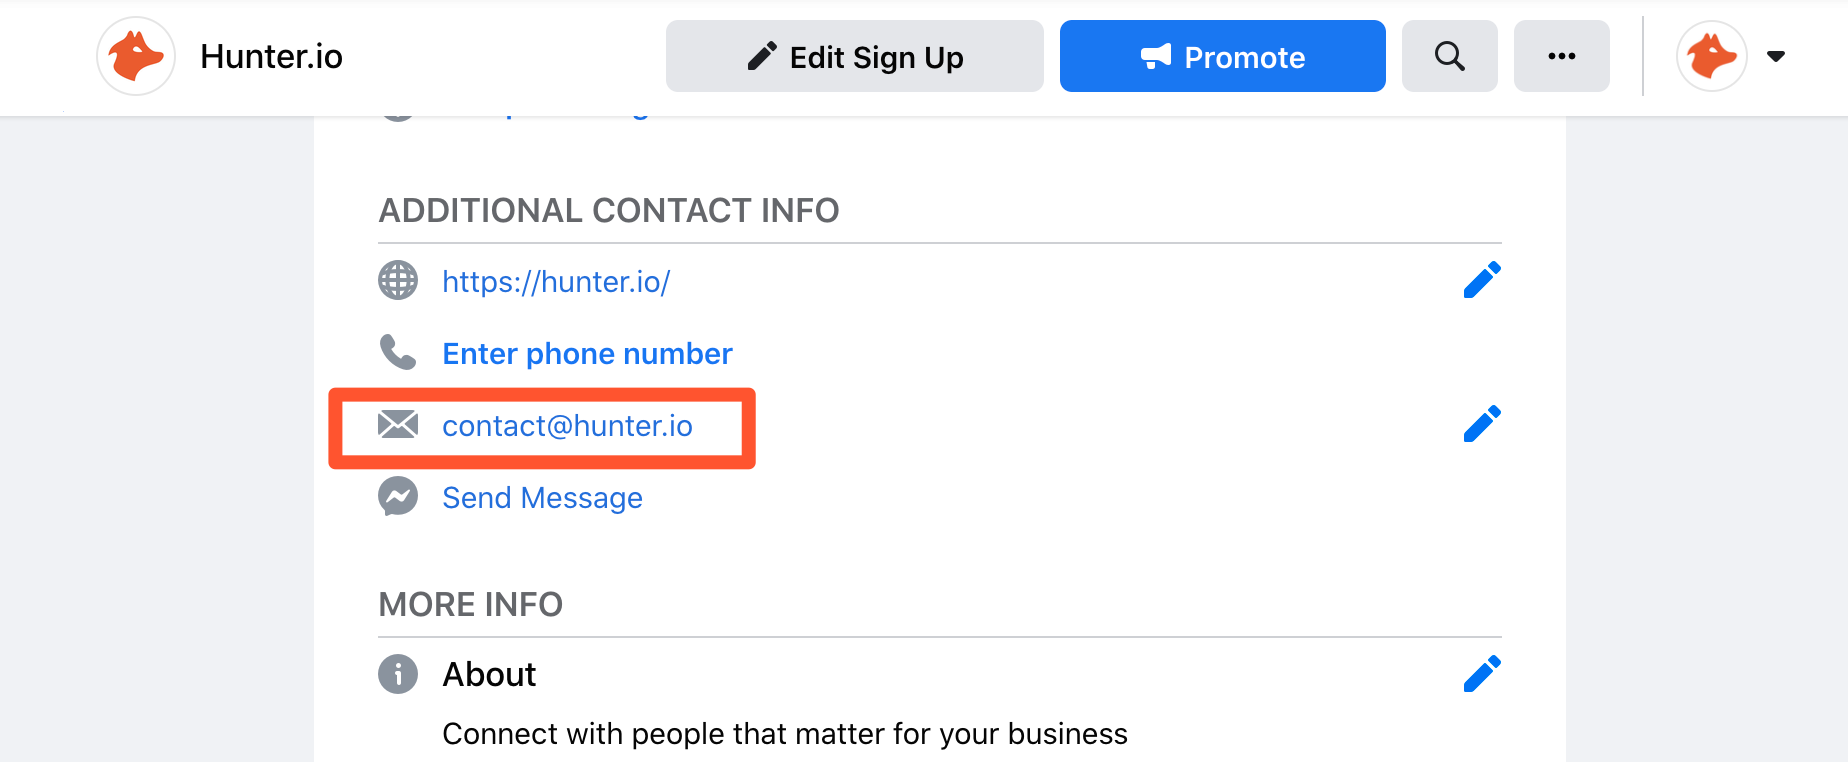 Find generic email address on company social media pages